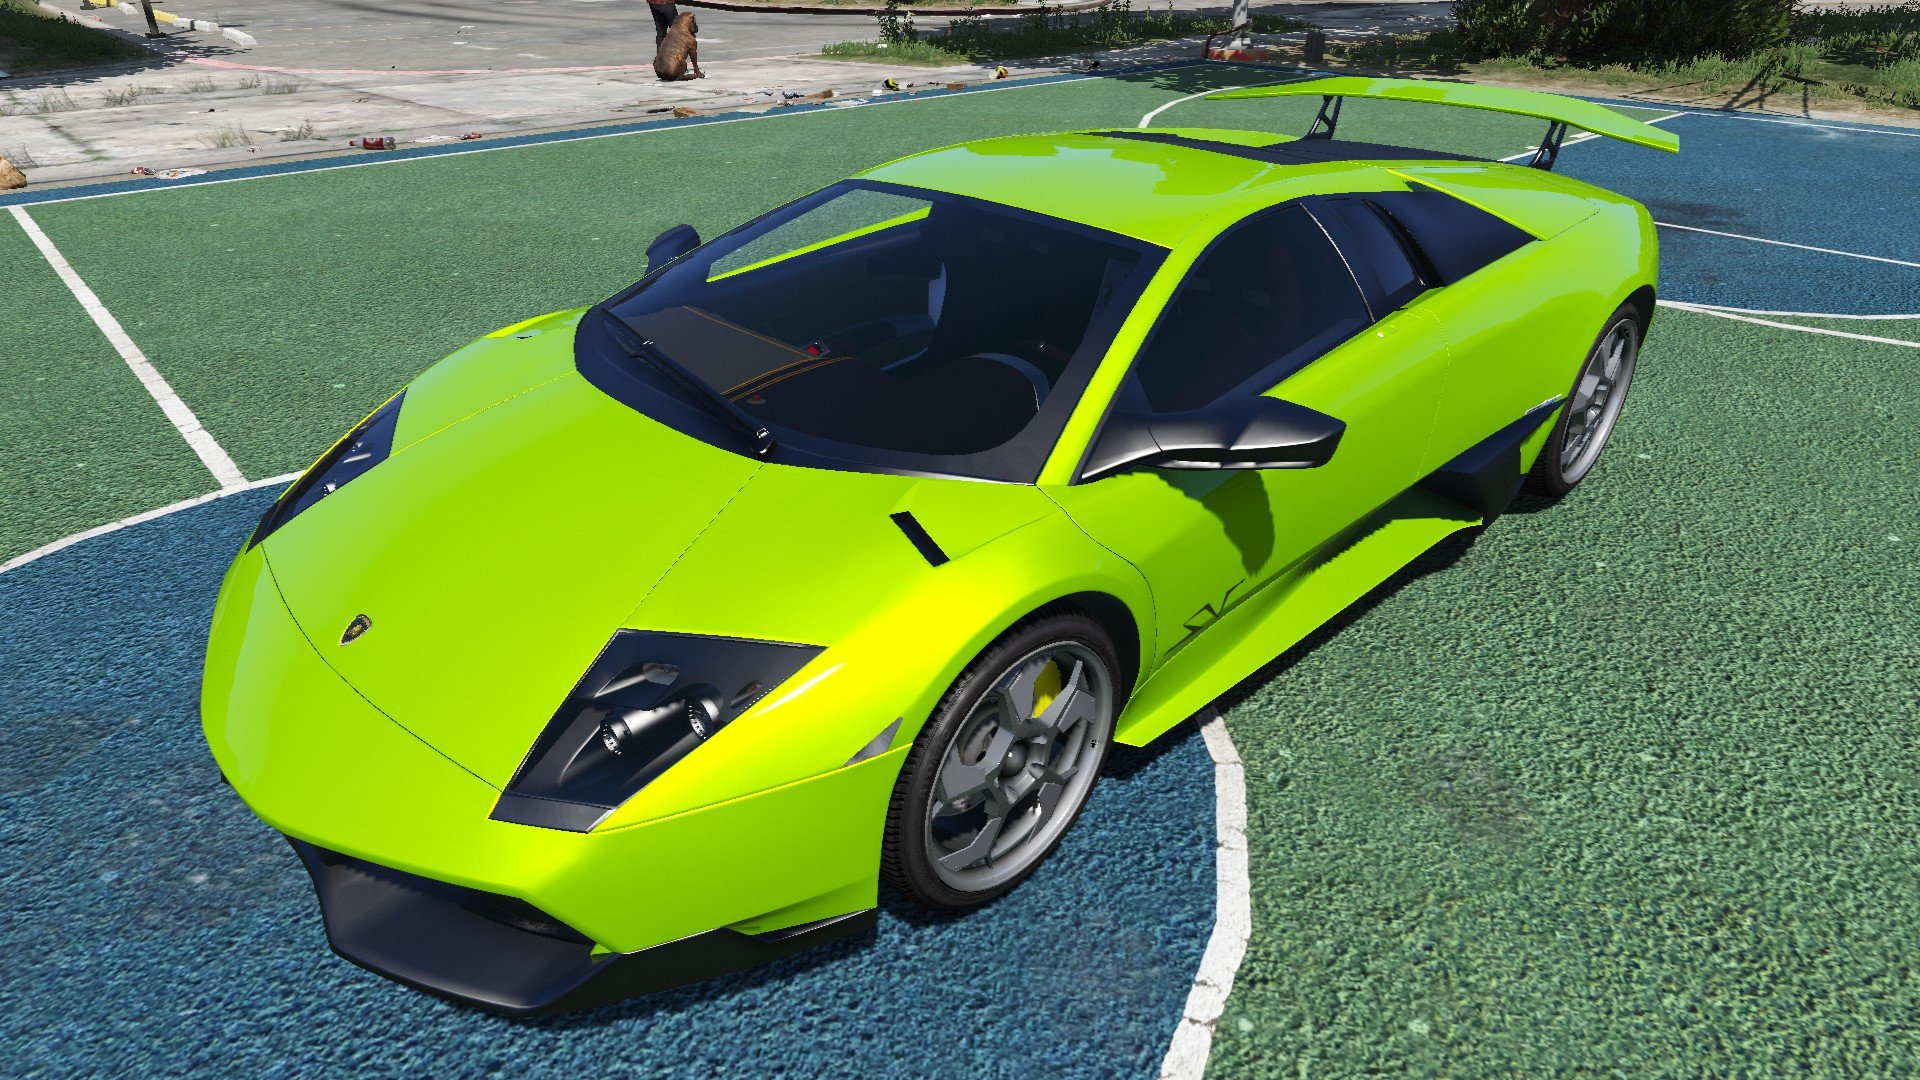 2010 lamborghini murcielago lp 670 4 sv gta5. Black Bedroom Furniture Sets. Home Design Ideas